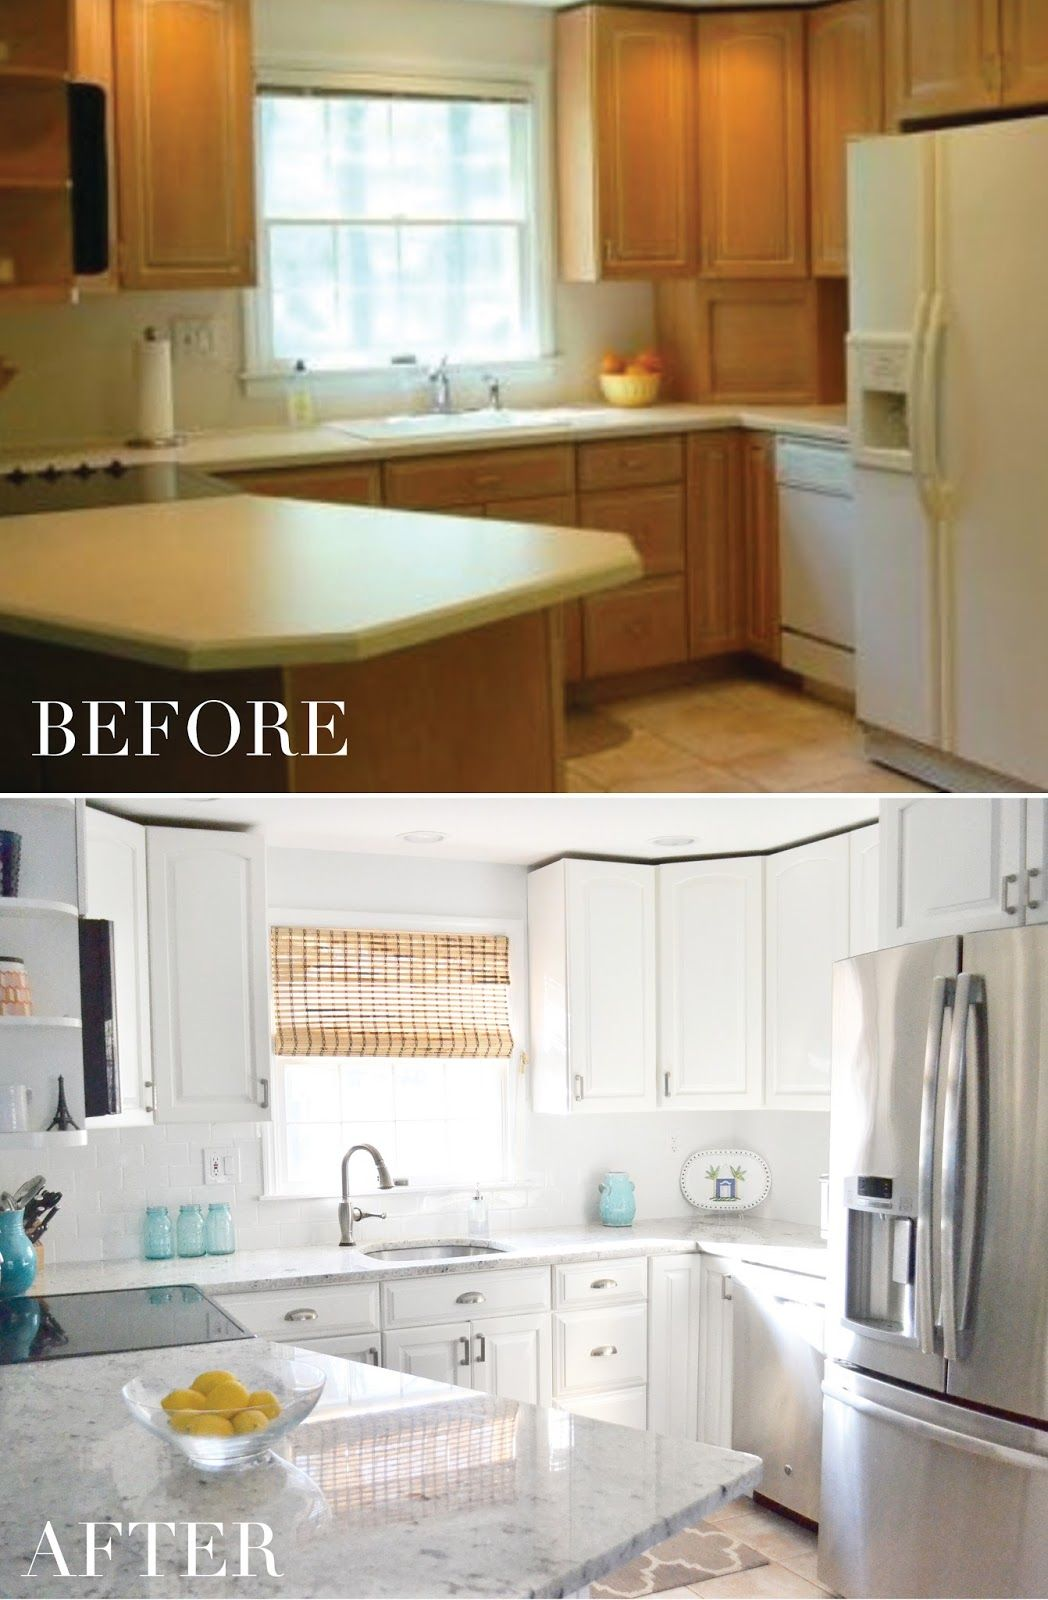 Our Kitchen Transformation From Dull To Bright New Kitchen